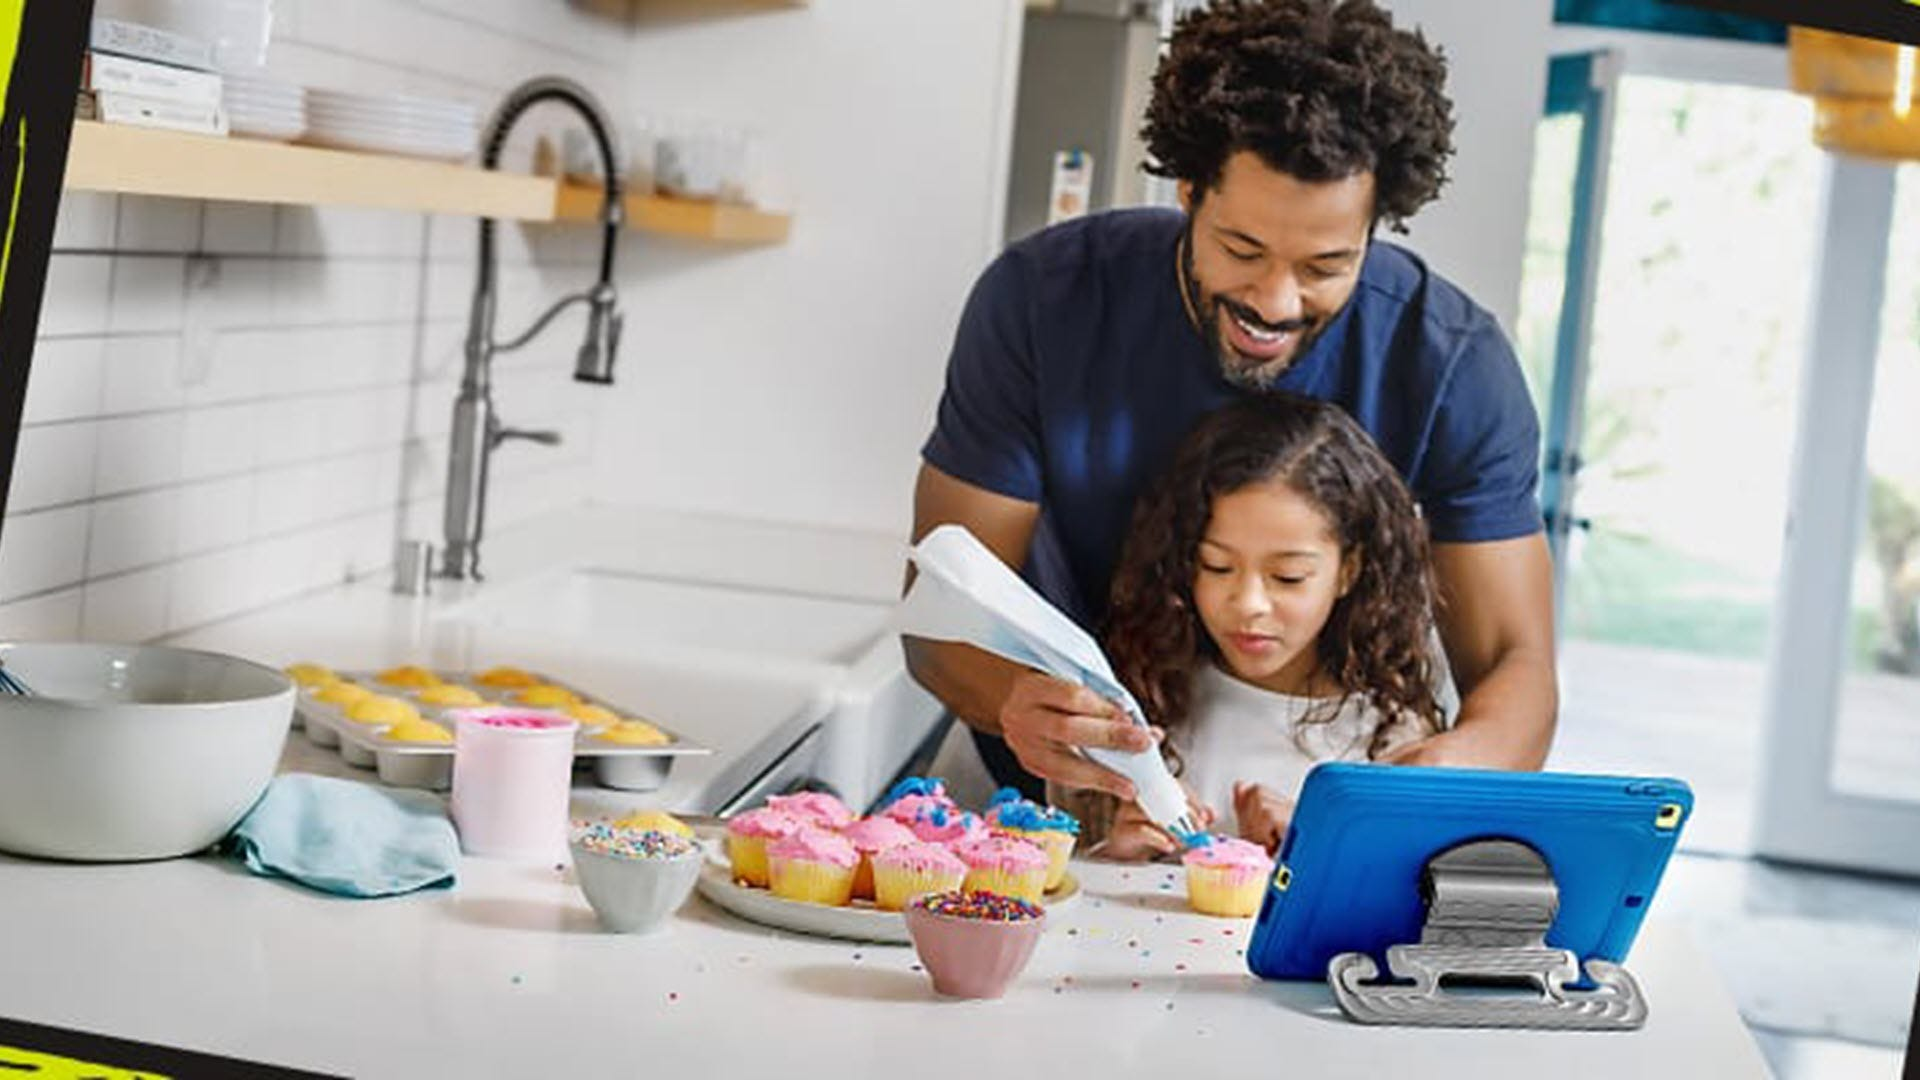 A father and daughter decorating cupcakes in front of an iPad held in a kid friendly case.